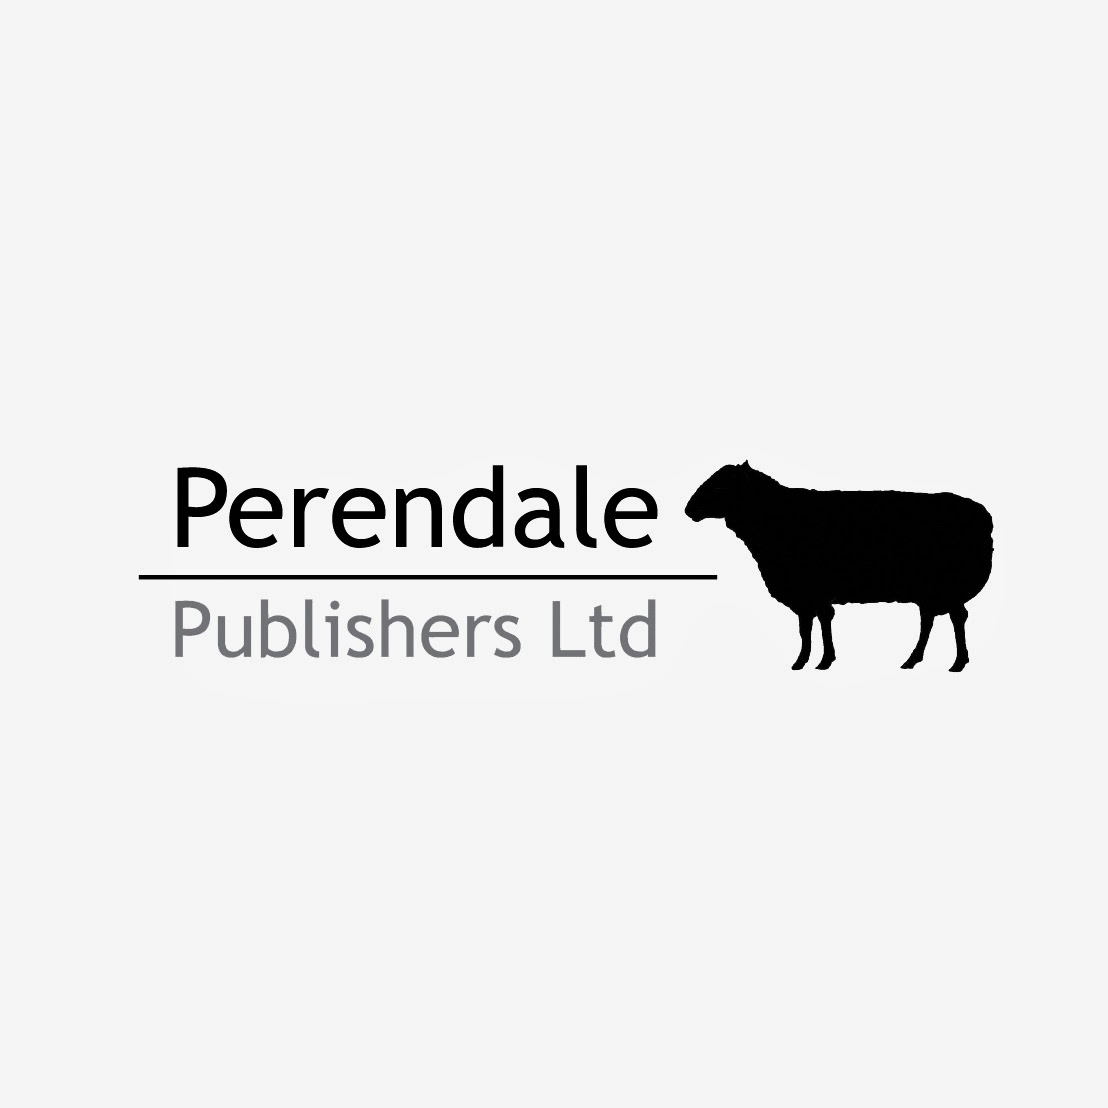 http://www.perendale.com/